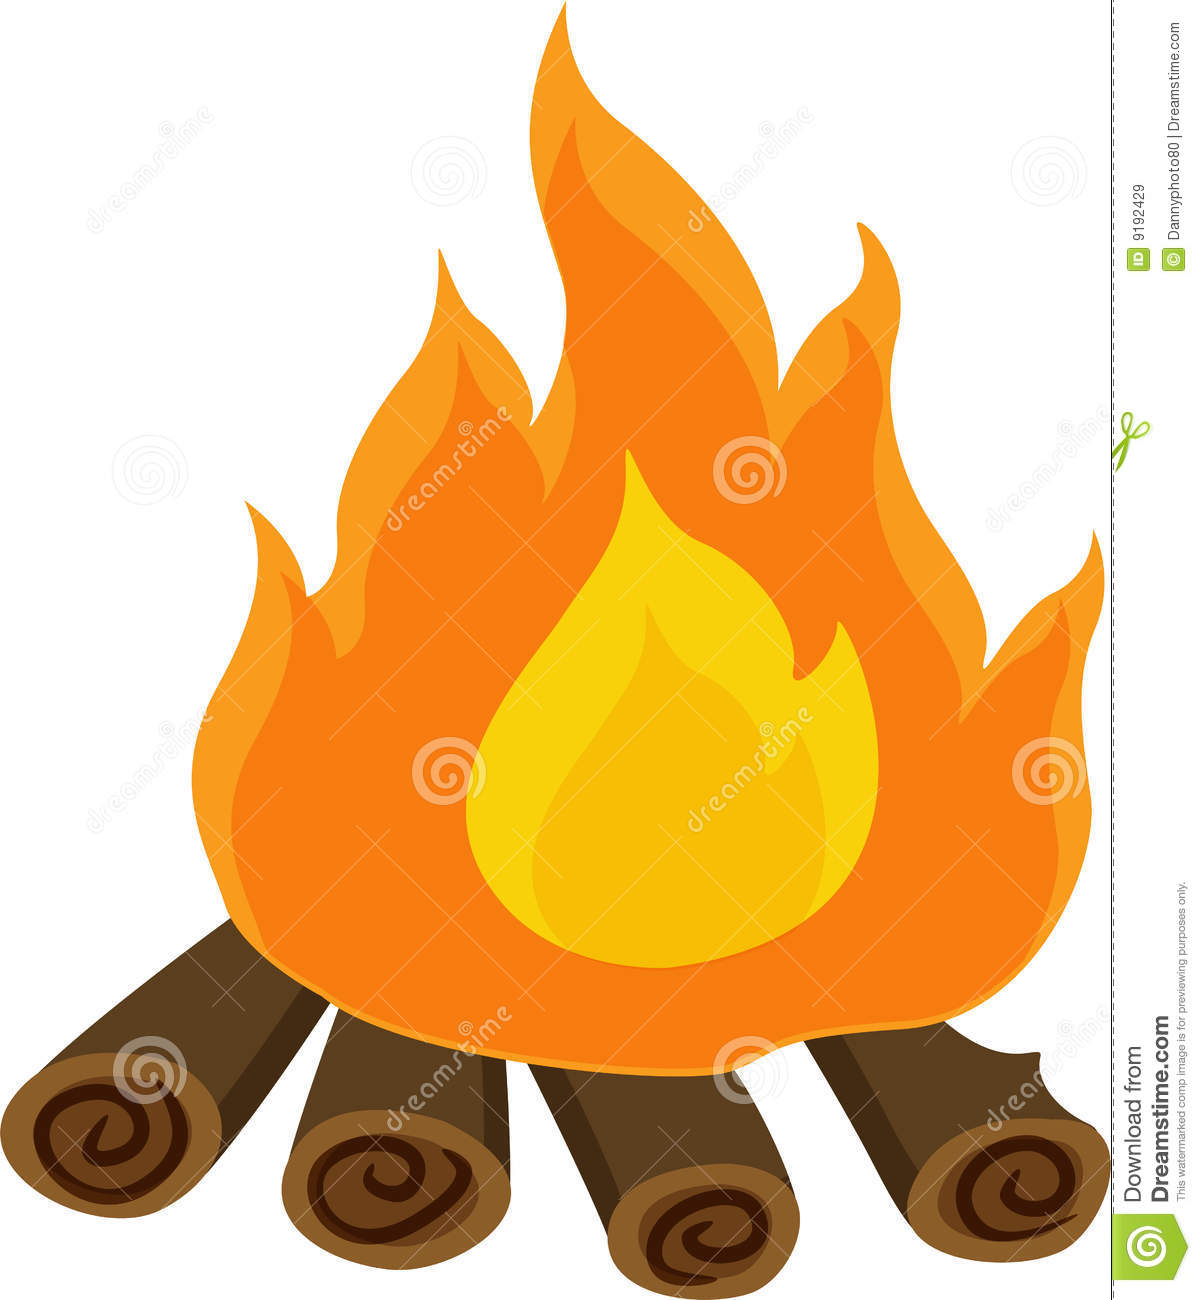 Campfire clipart log fire Logs Images Cartoon With Clipart